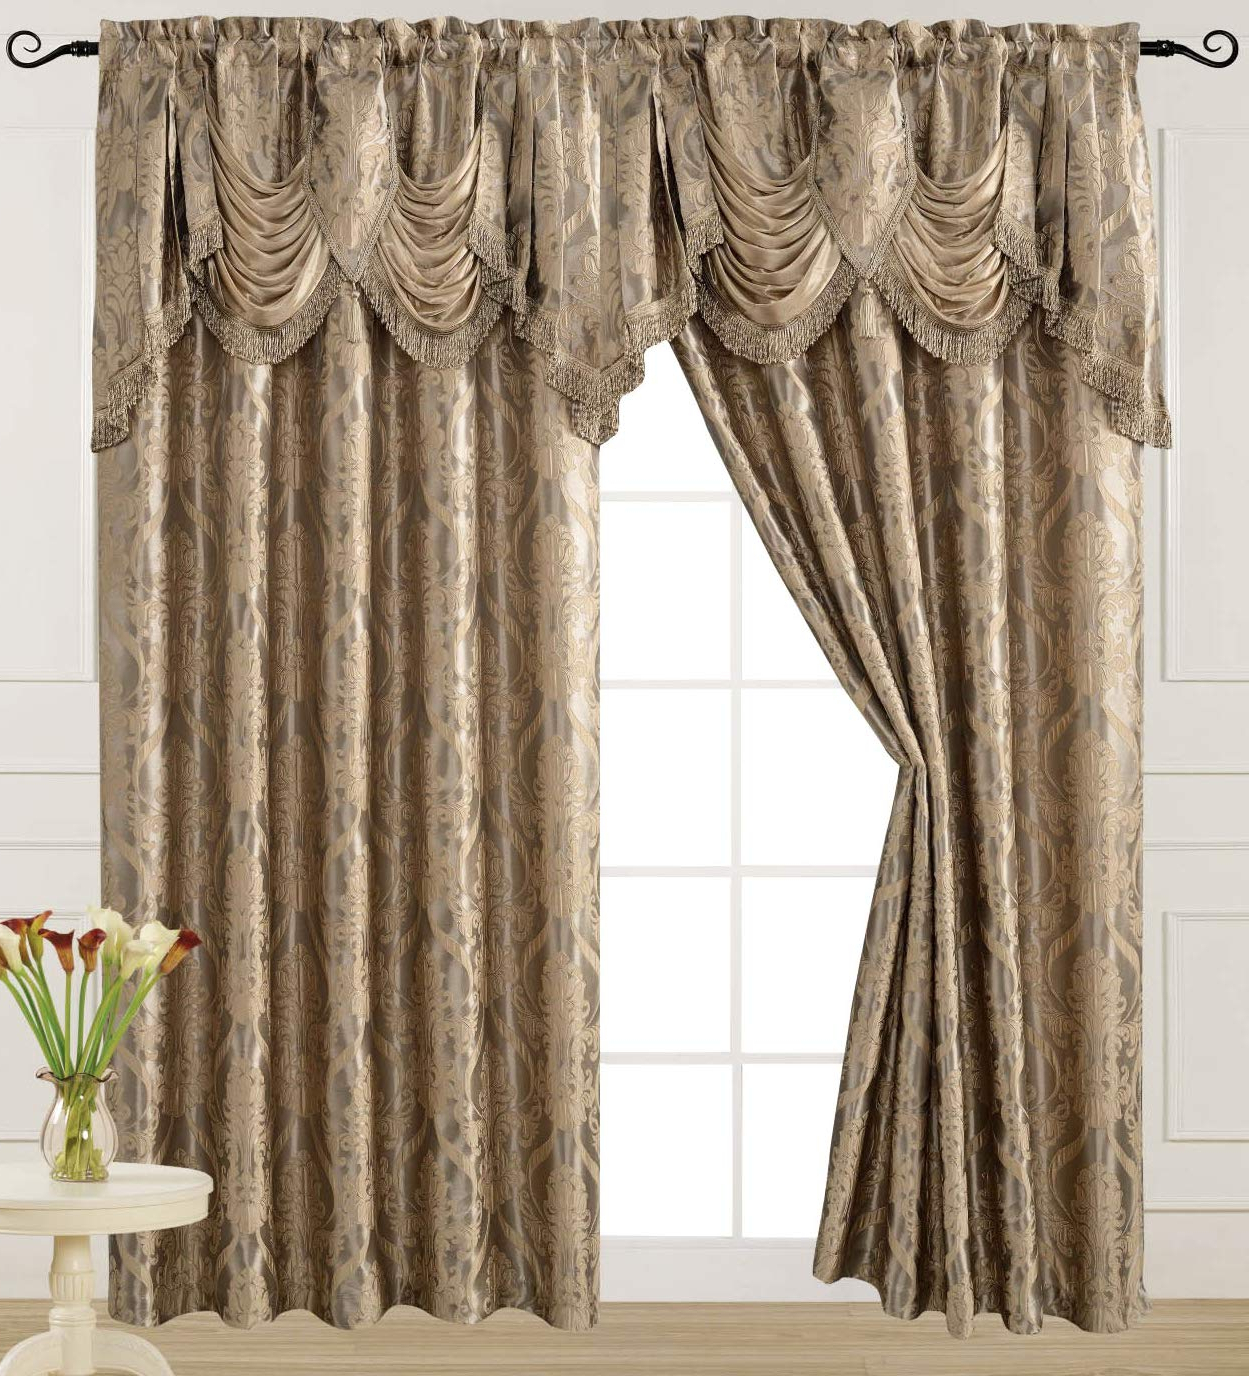 V Luxury Jacquard Curtain Panel With Attached Waterfall Valance, 54 84 Inch Ashley Light Taupe Regarding Popular Elegant Comfort Luxury Penelopie Jacquard Window Curtain Panel Pairs (View 8 of 20)